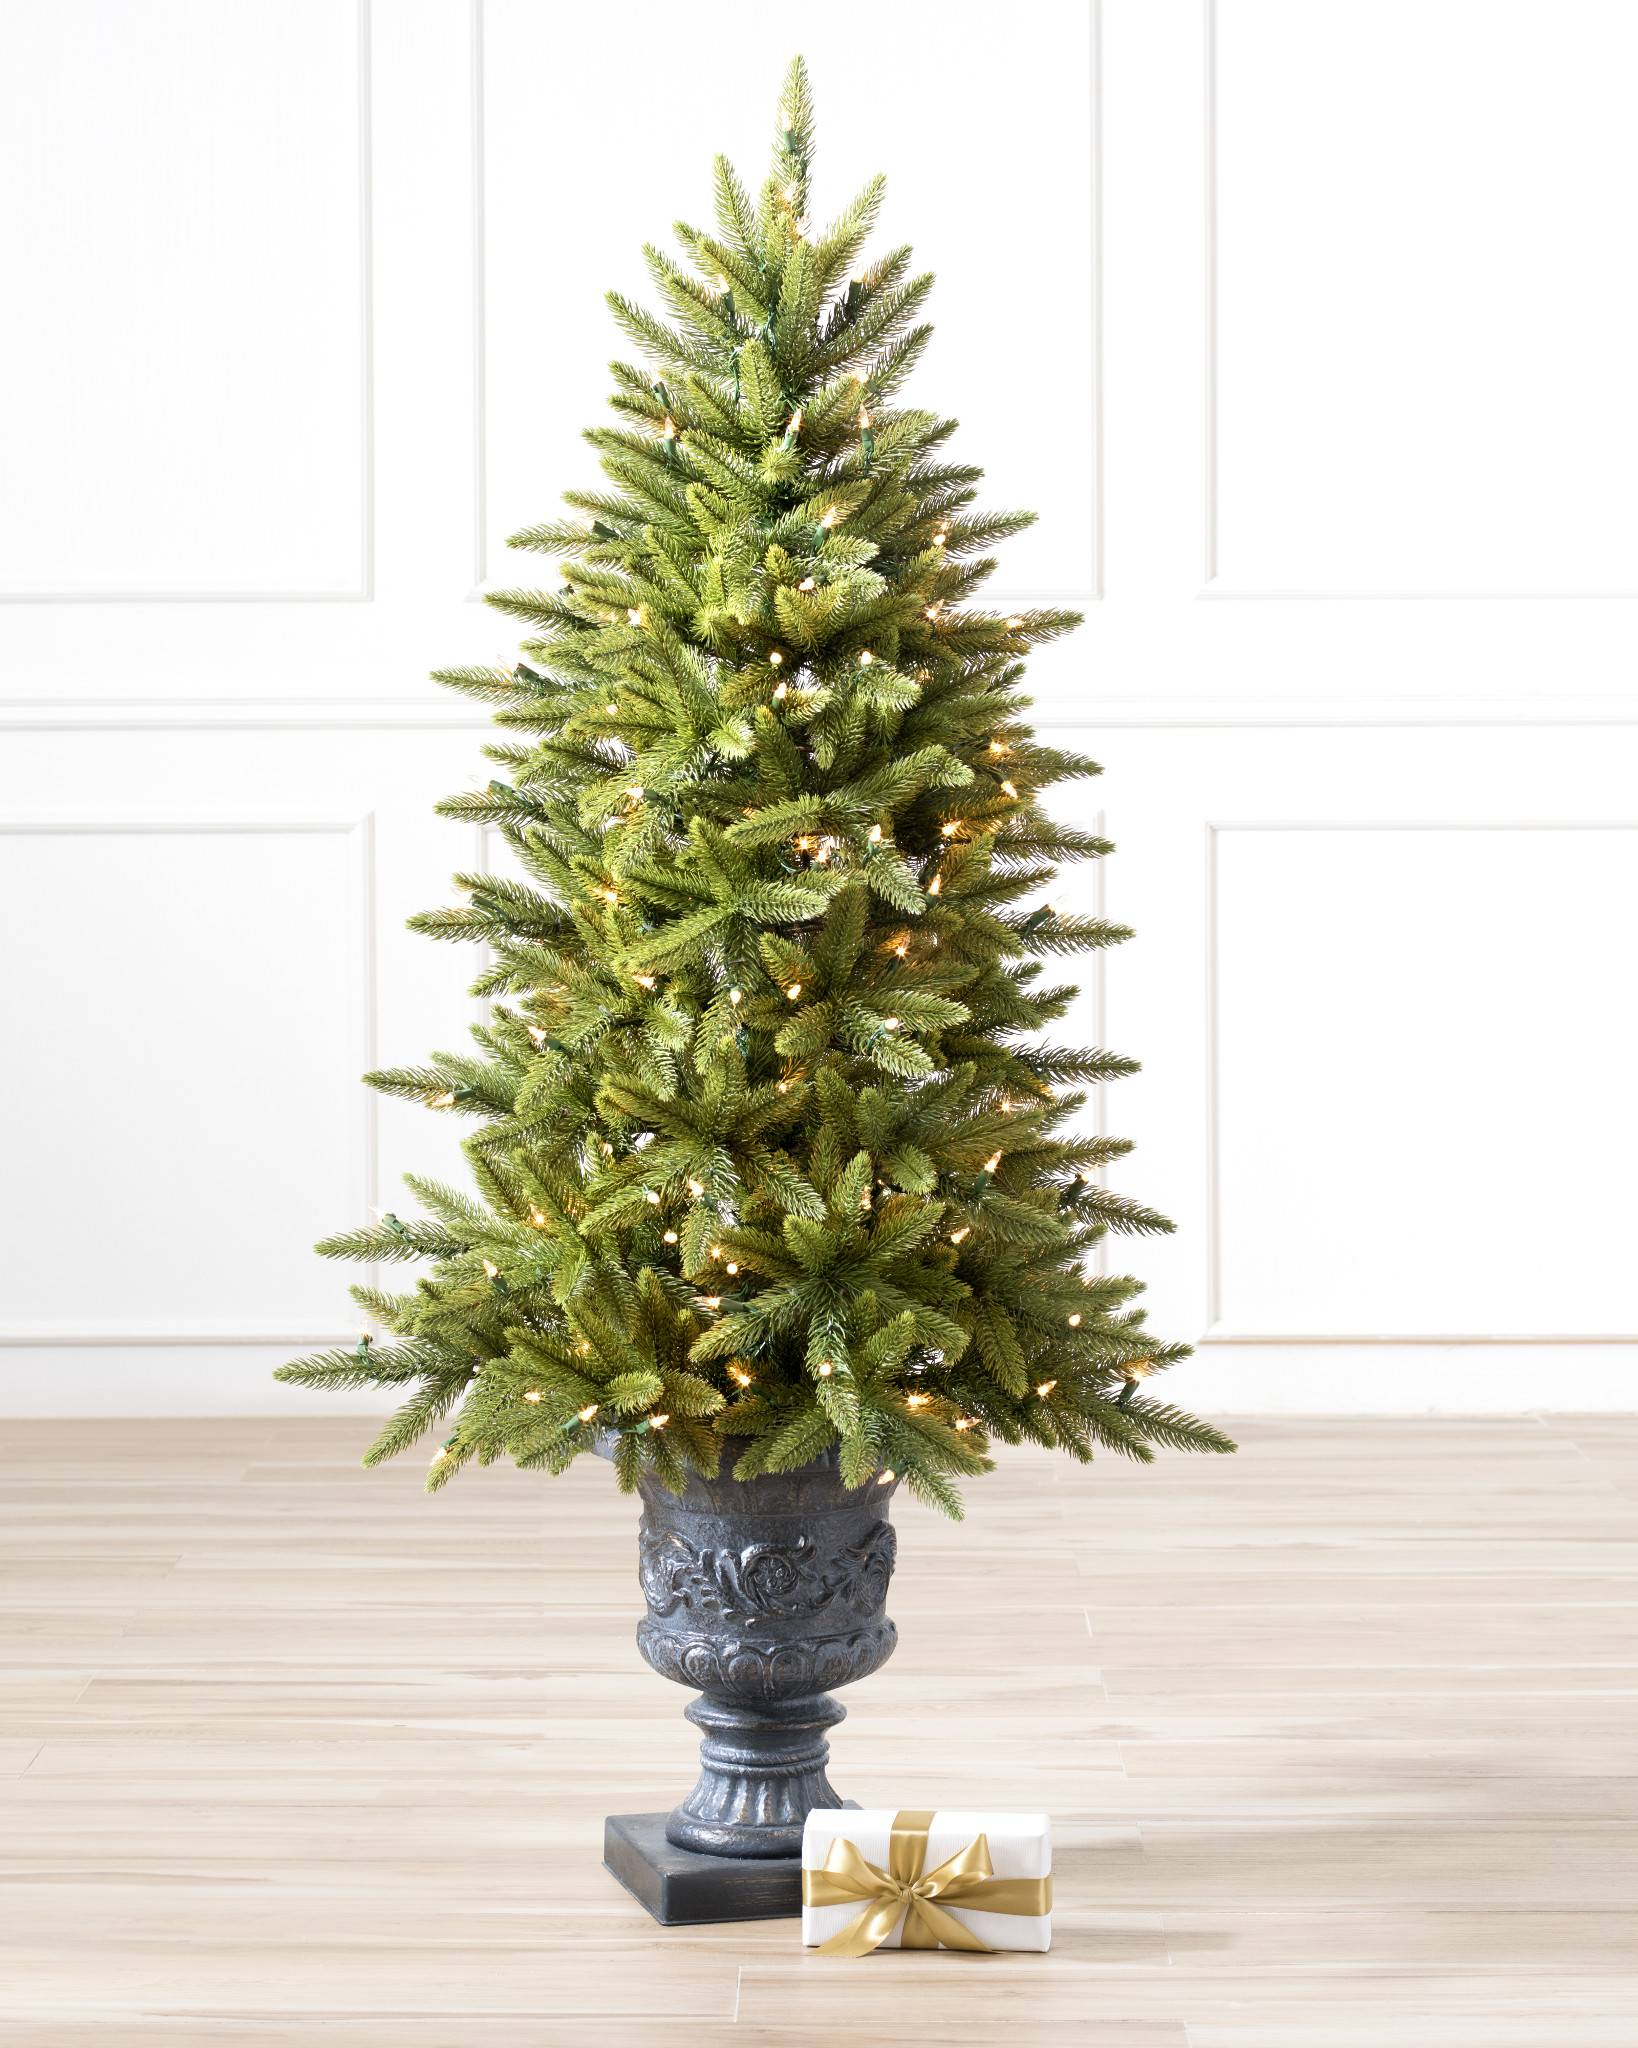 Highland Estate Potted Spruce Tree